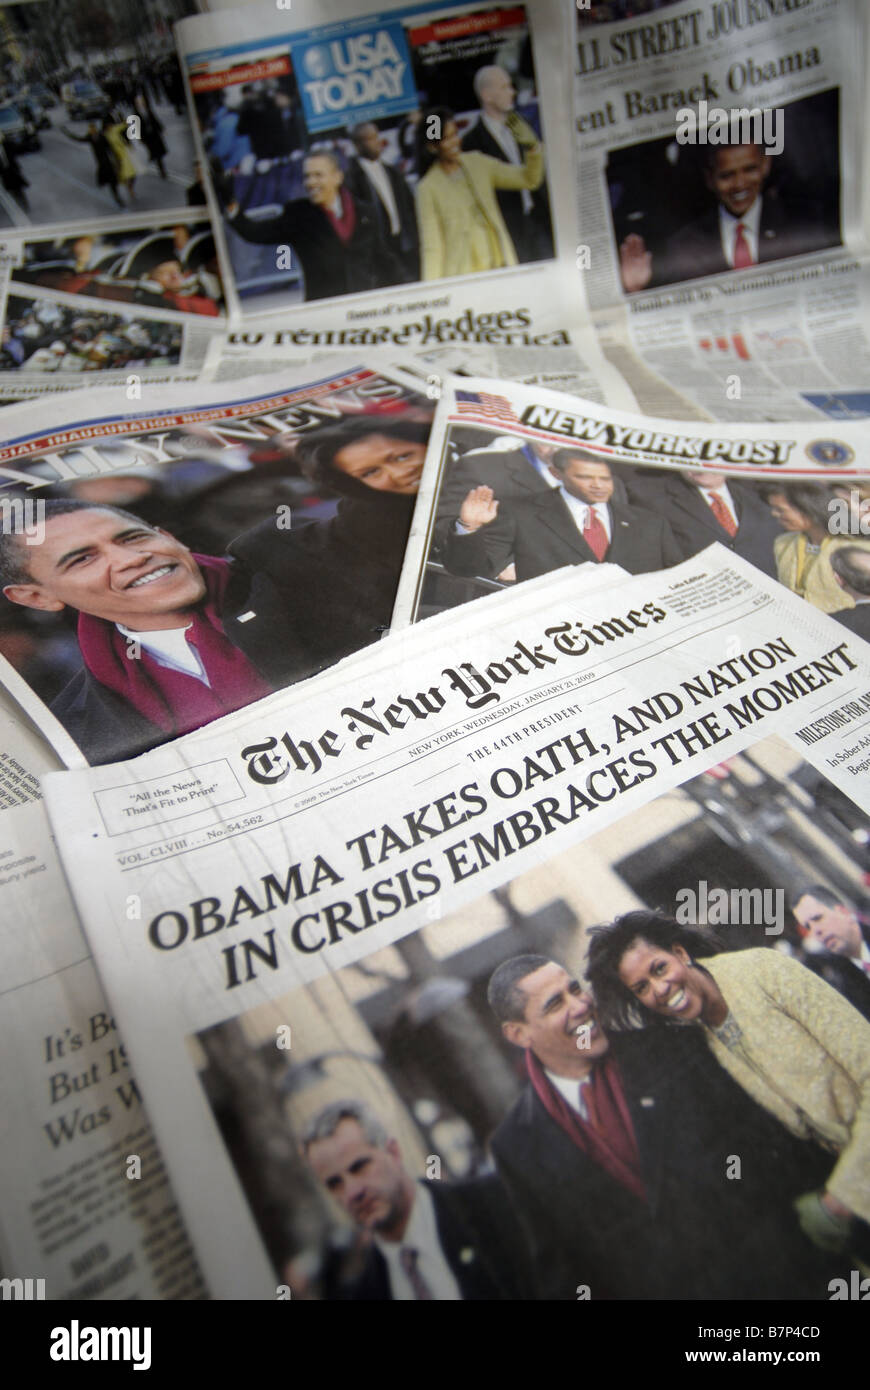 Headlines on newspapers in New York on Wednesday January 21 2009 cover the inauguration ceremonies of Barack Obama - Stock Image